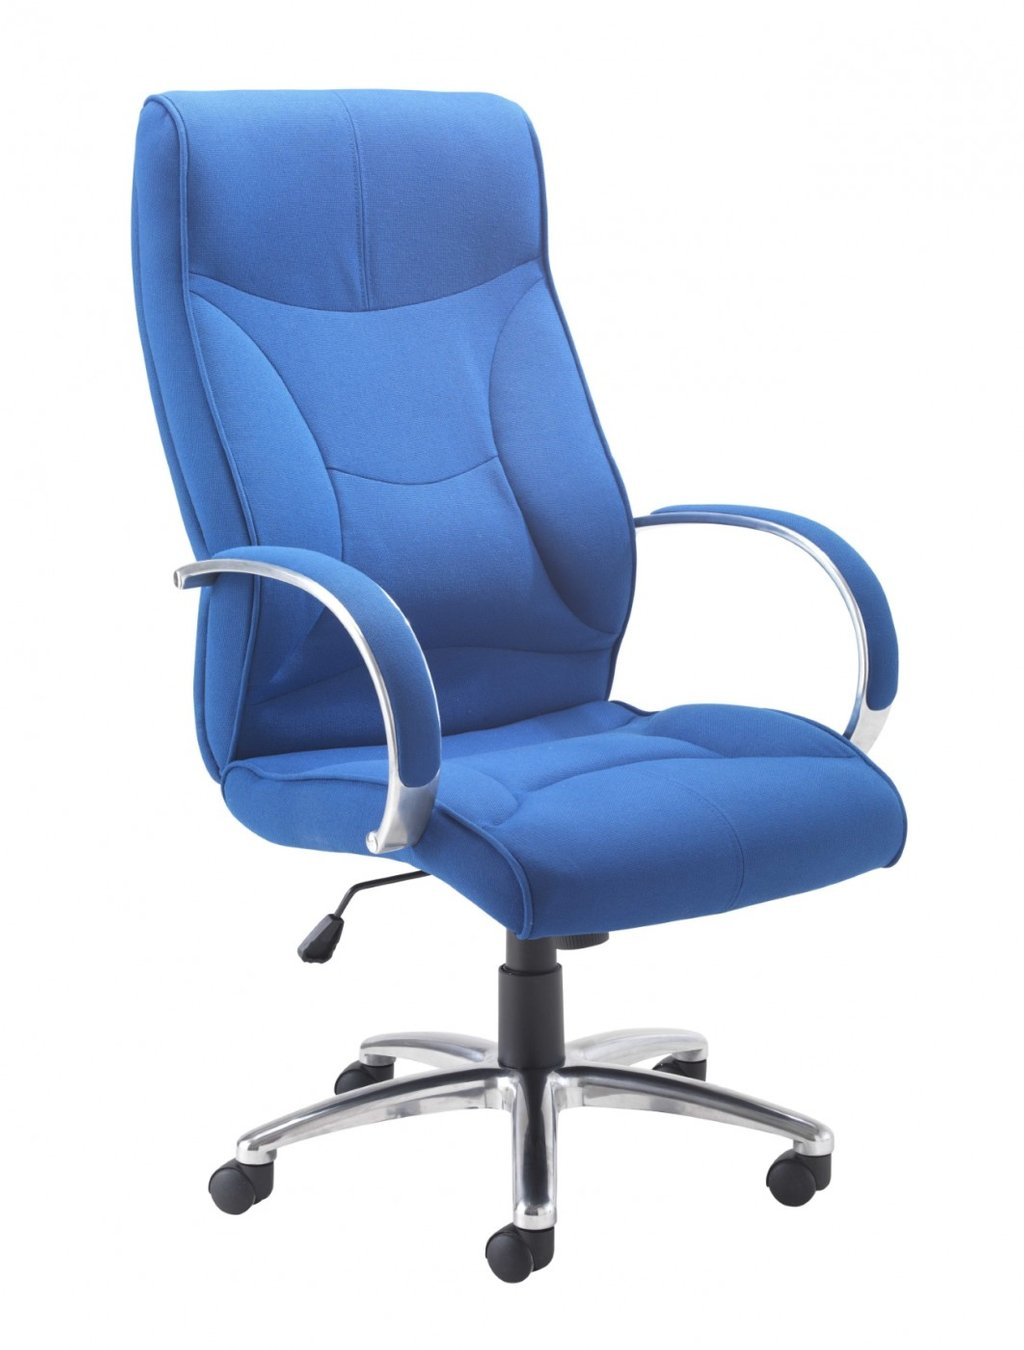 Office Chair Tc Whist Executive Fabric Office Chair Rolling Office Chairs Covers